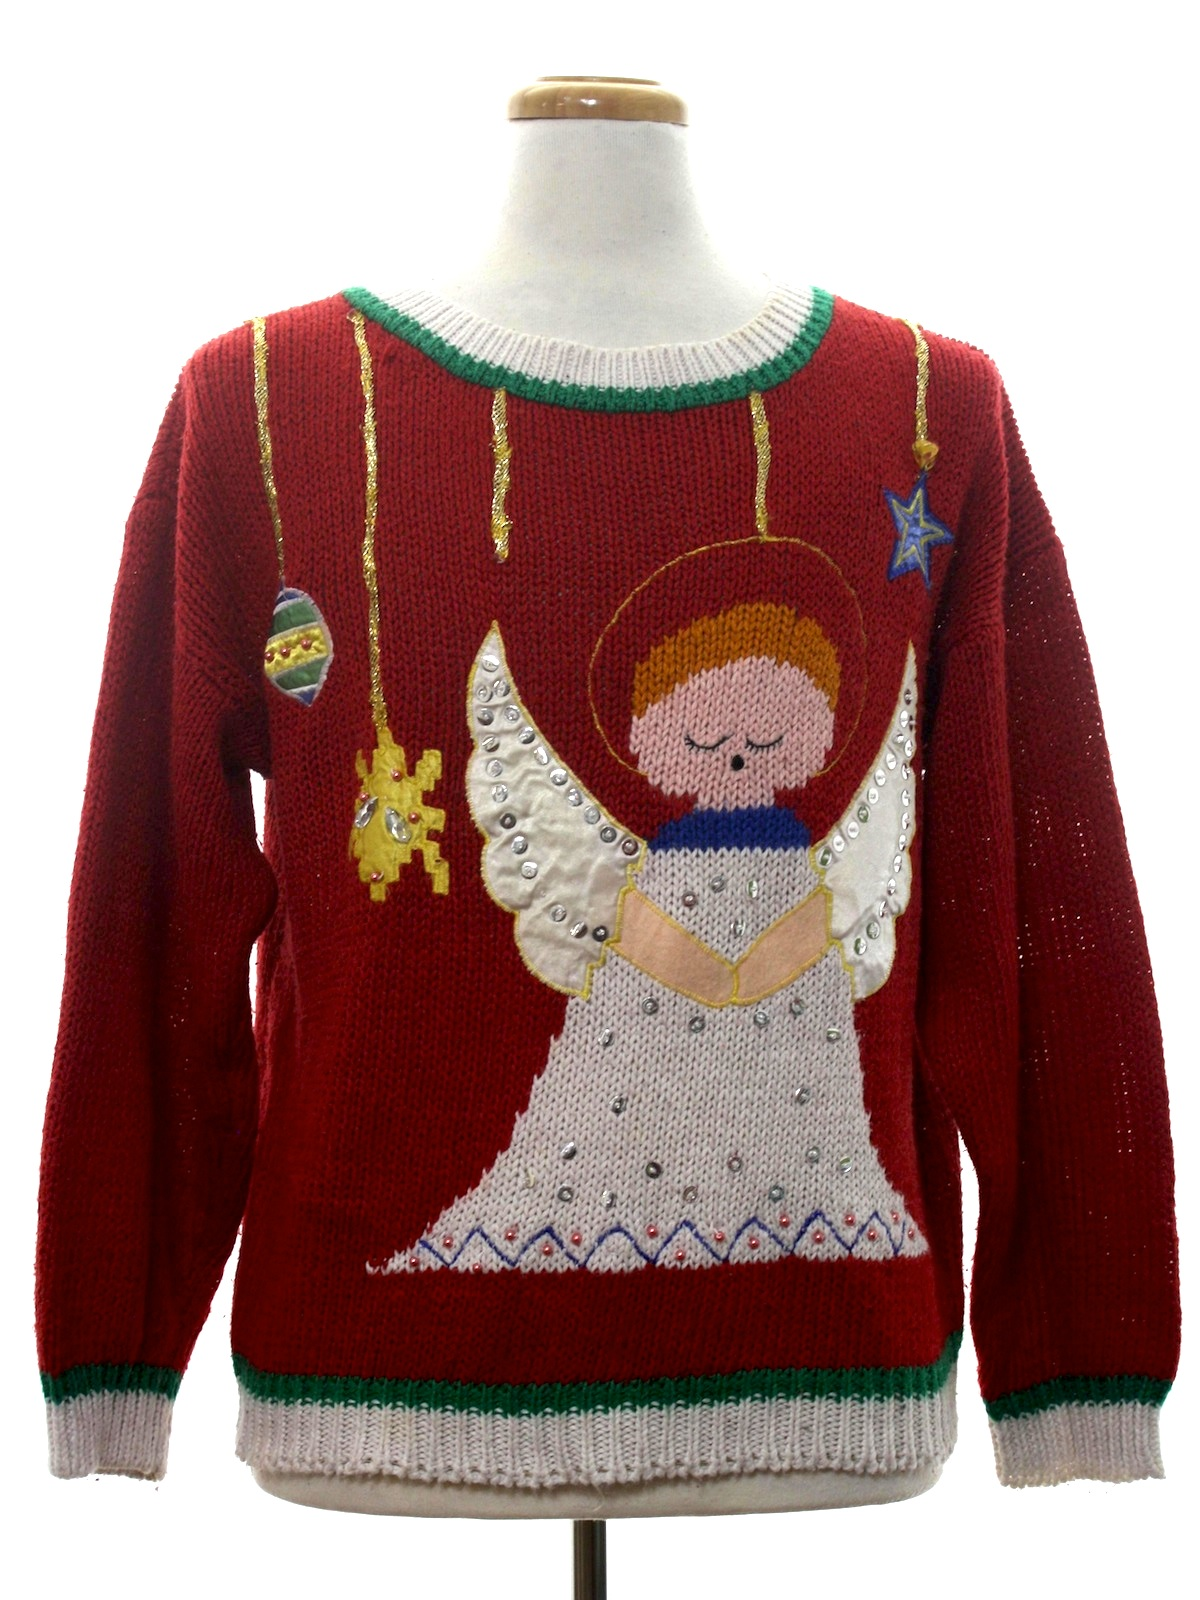 Halo Christmas Sweater.1980 S Color Cues Unisex Vintage Ugly Christmas Sweater